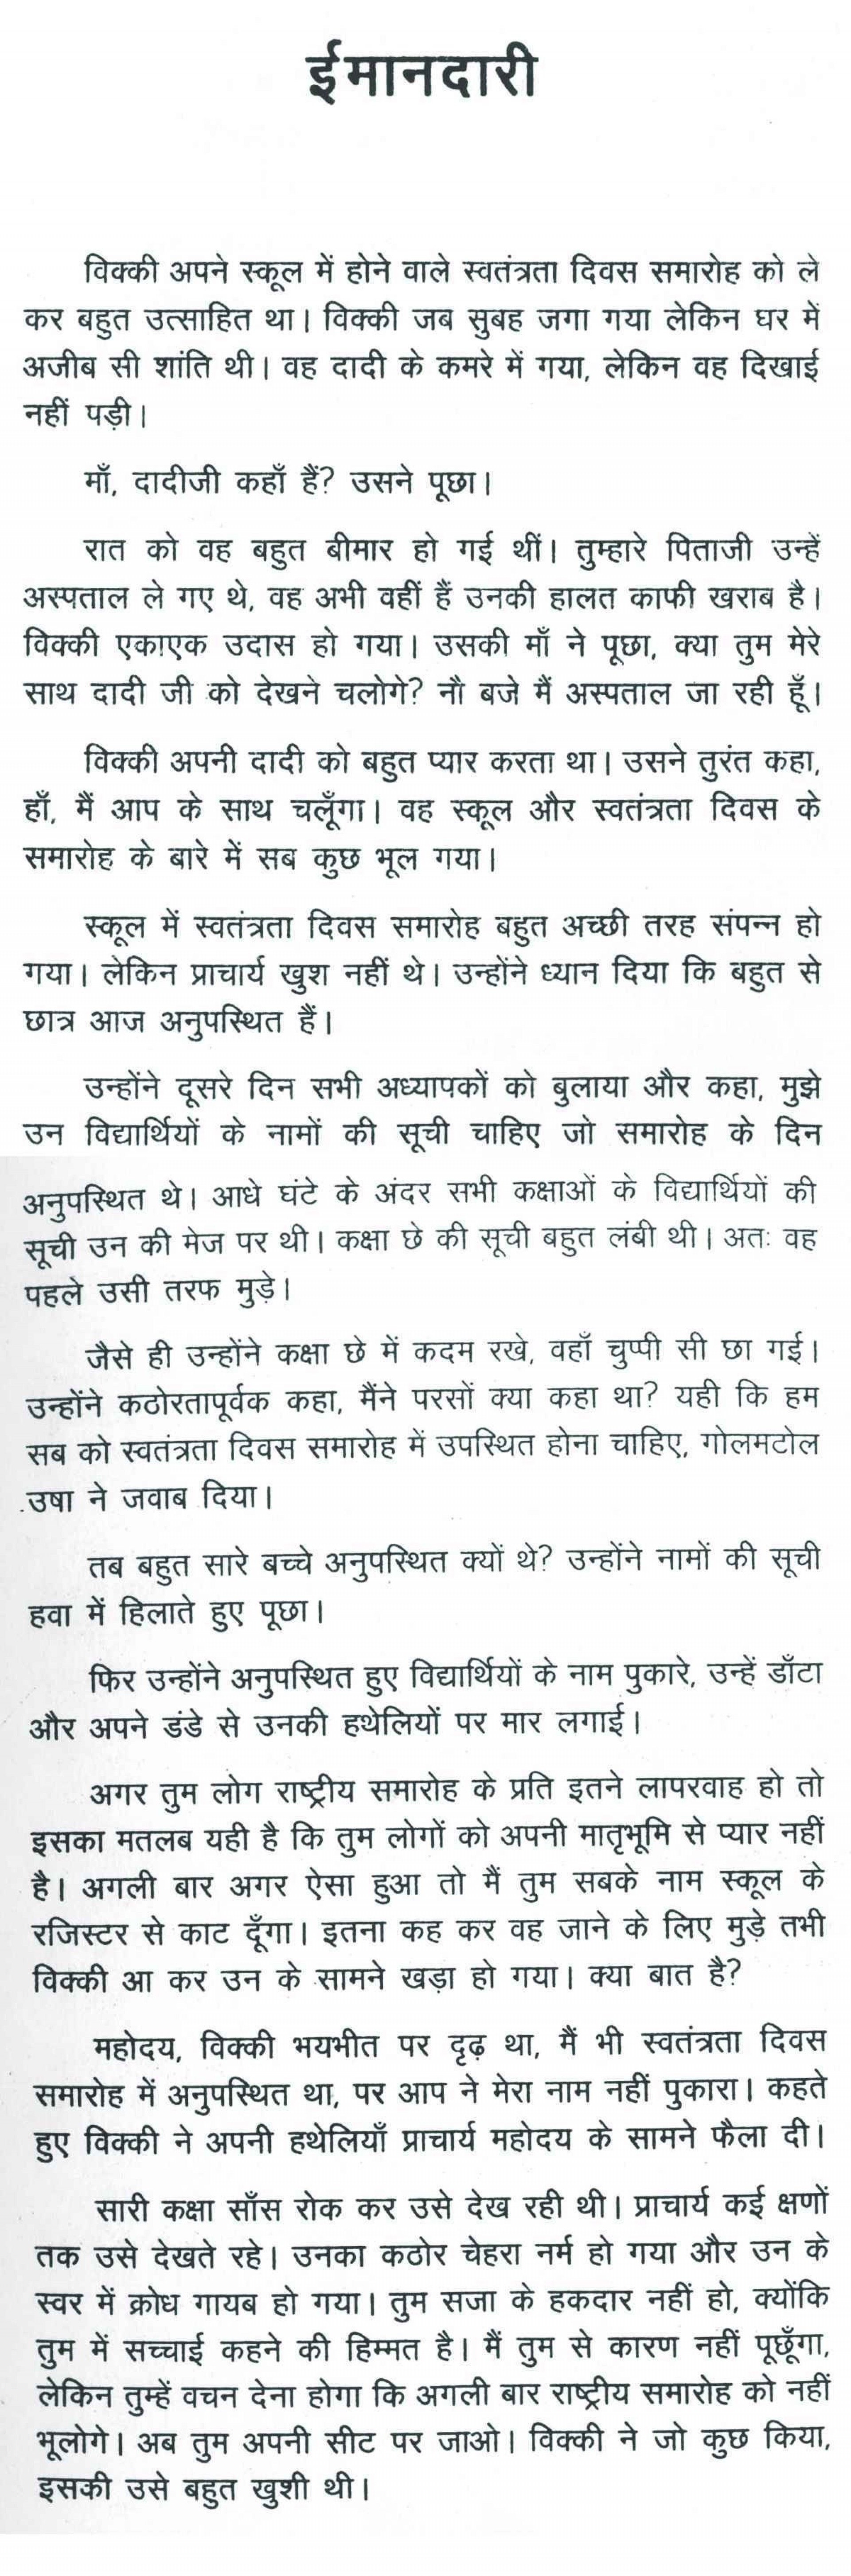 007 10037 Thumb Essay Of Honesty Astounding Is The Only Way To Success On Best Policy For Class 8 In Hindi 1920